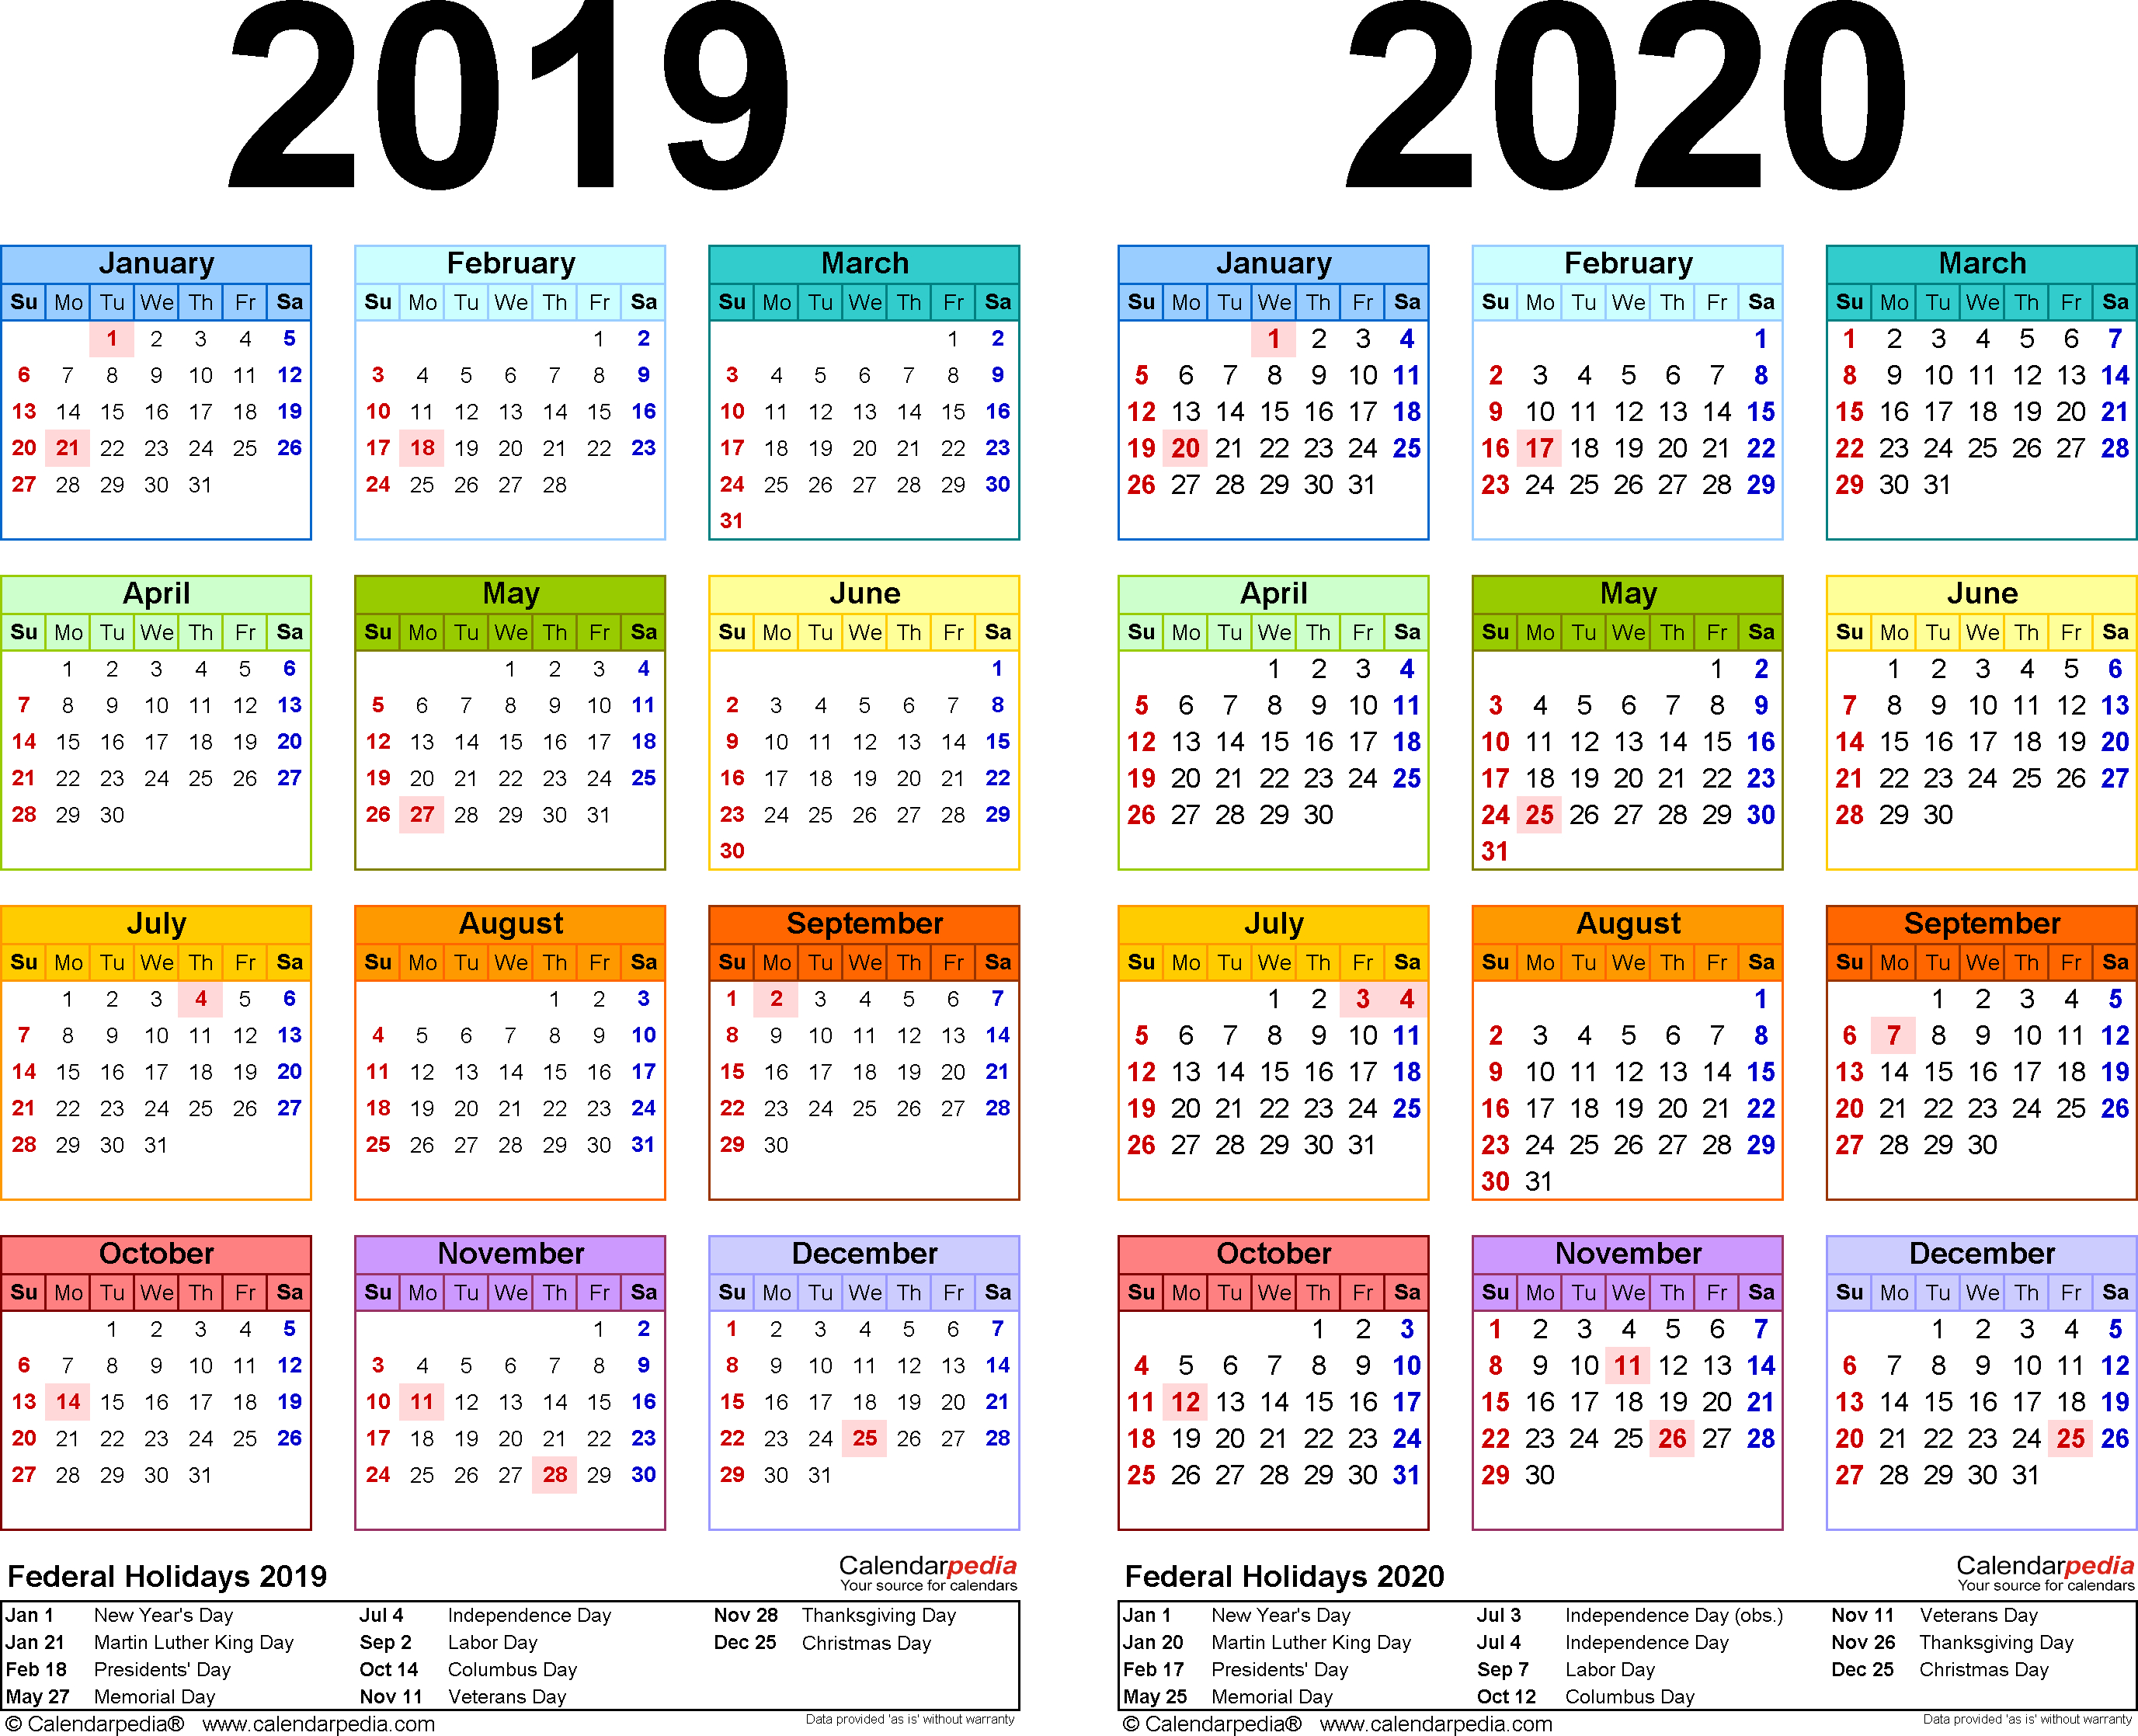 2019-2020 Calendar - Free Printable Two-Year Word Calendars throughout Calander Single Page Printable 2019 2020